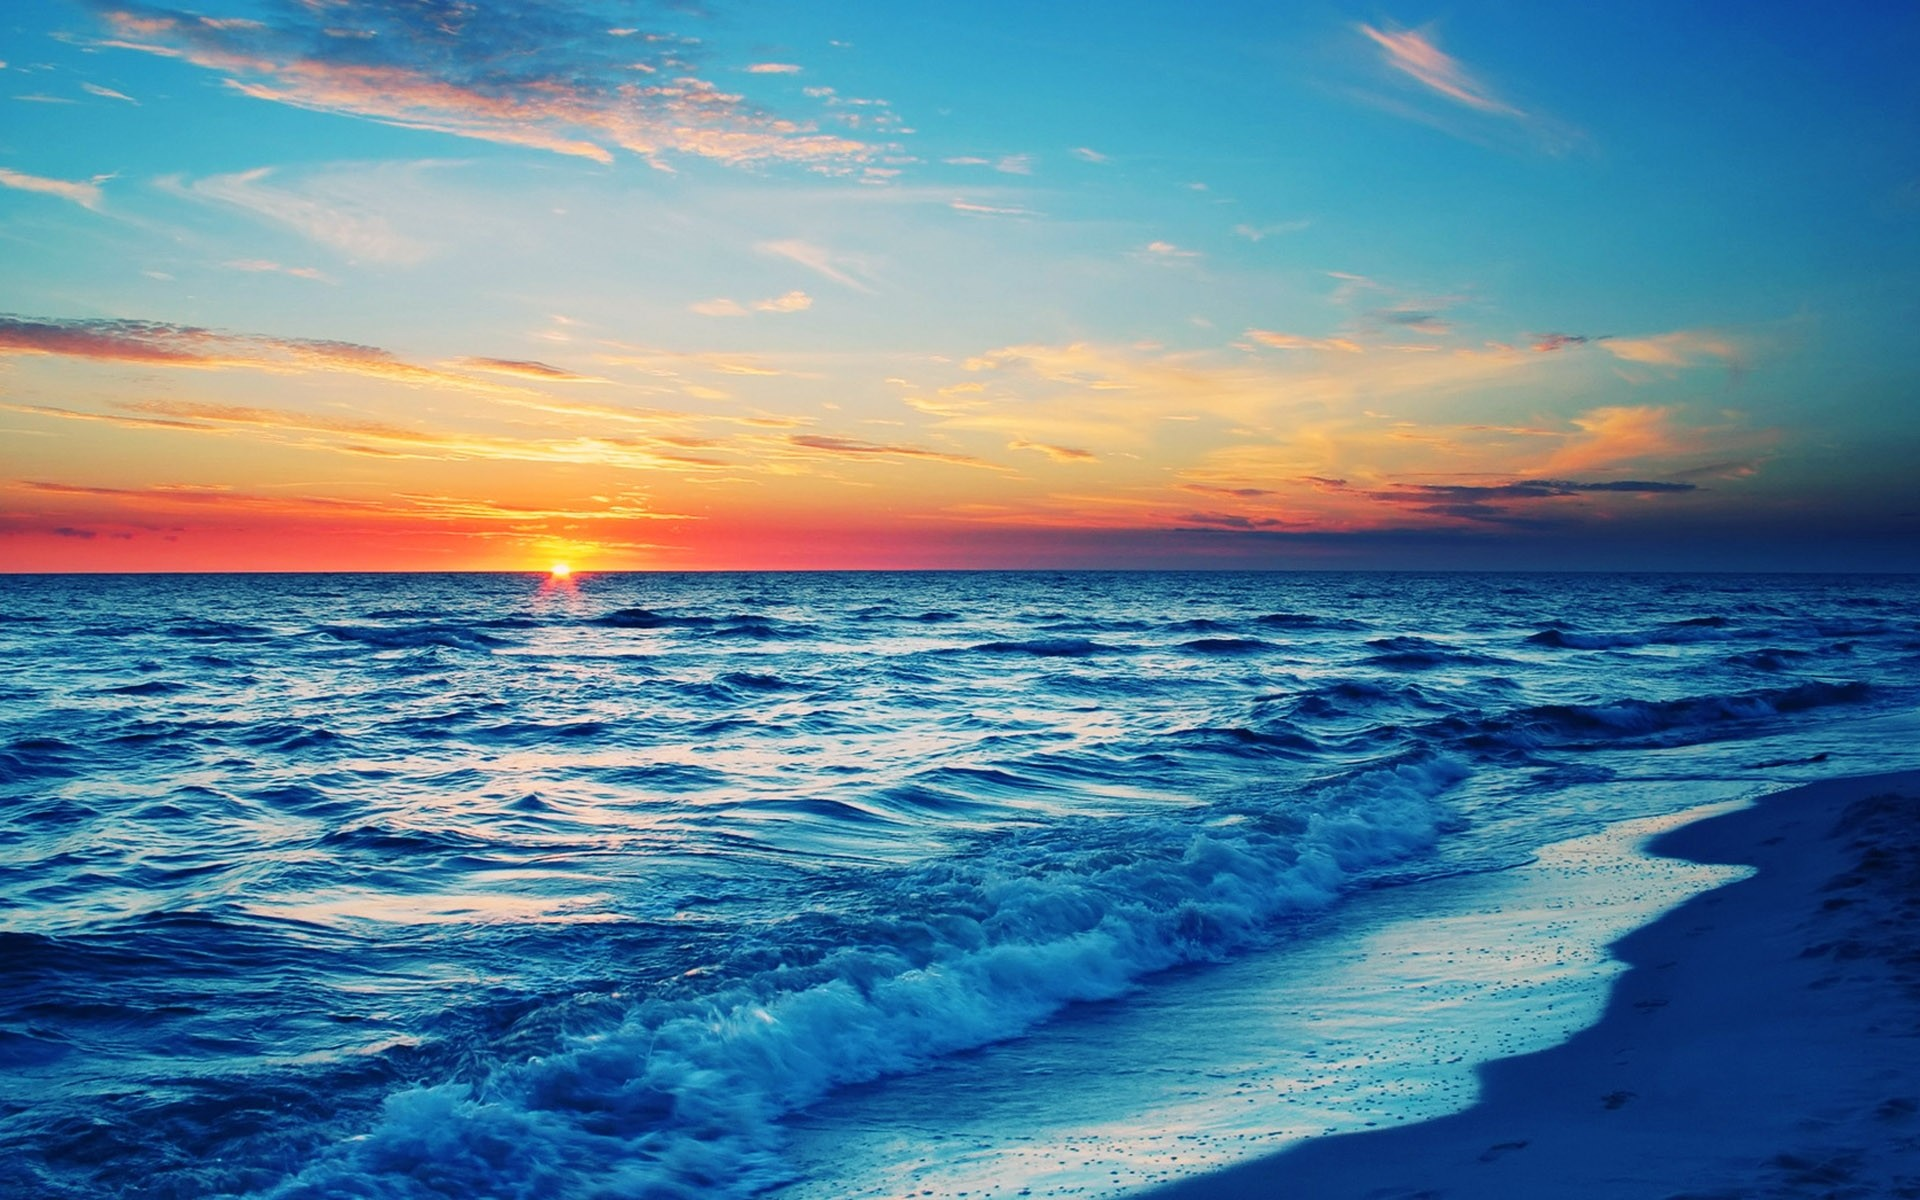 Beach Waves Wallpapers for Desktop (55+ images)